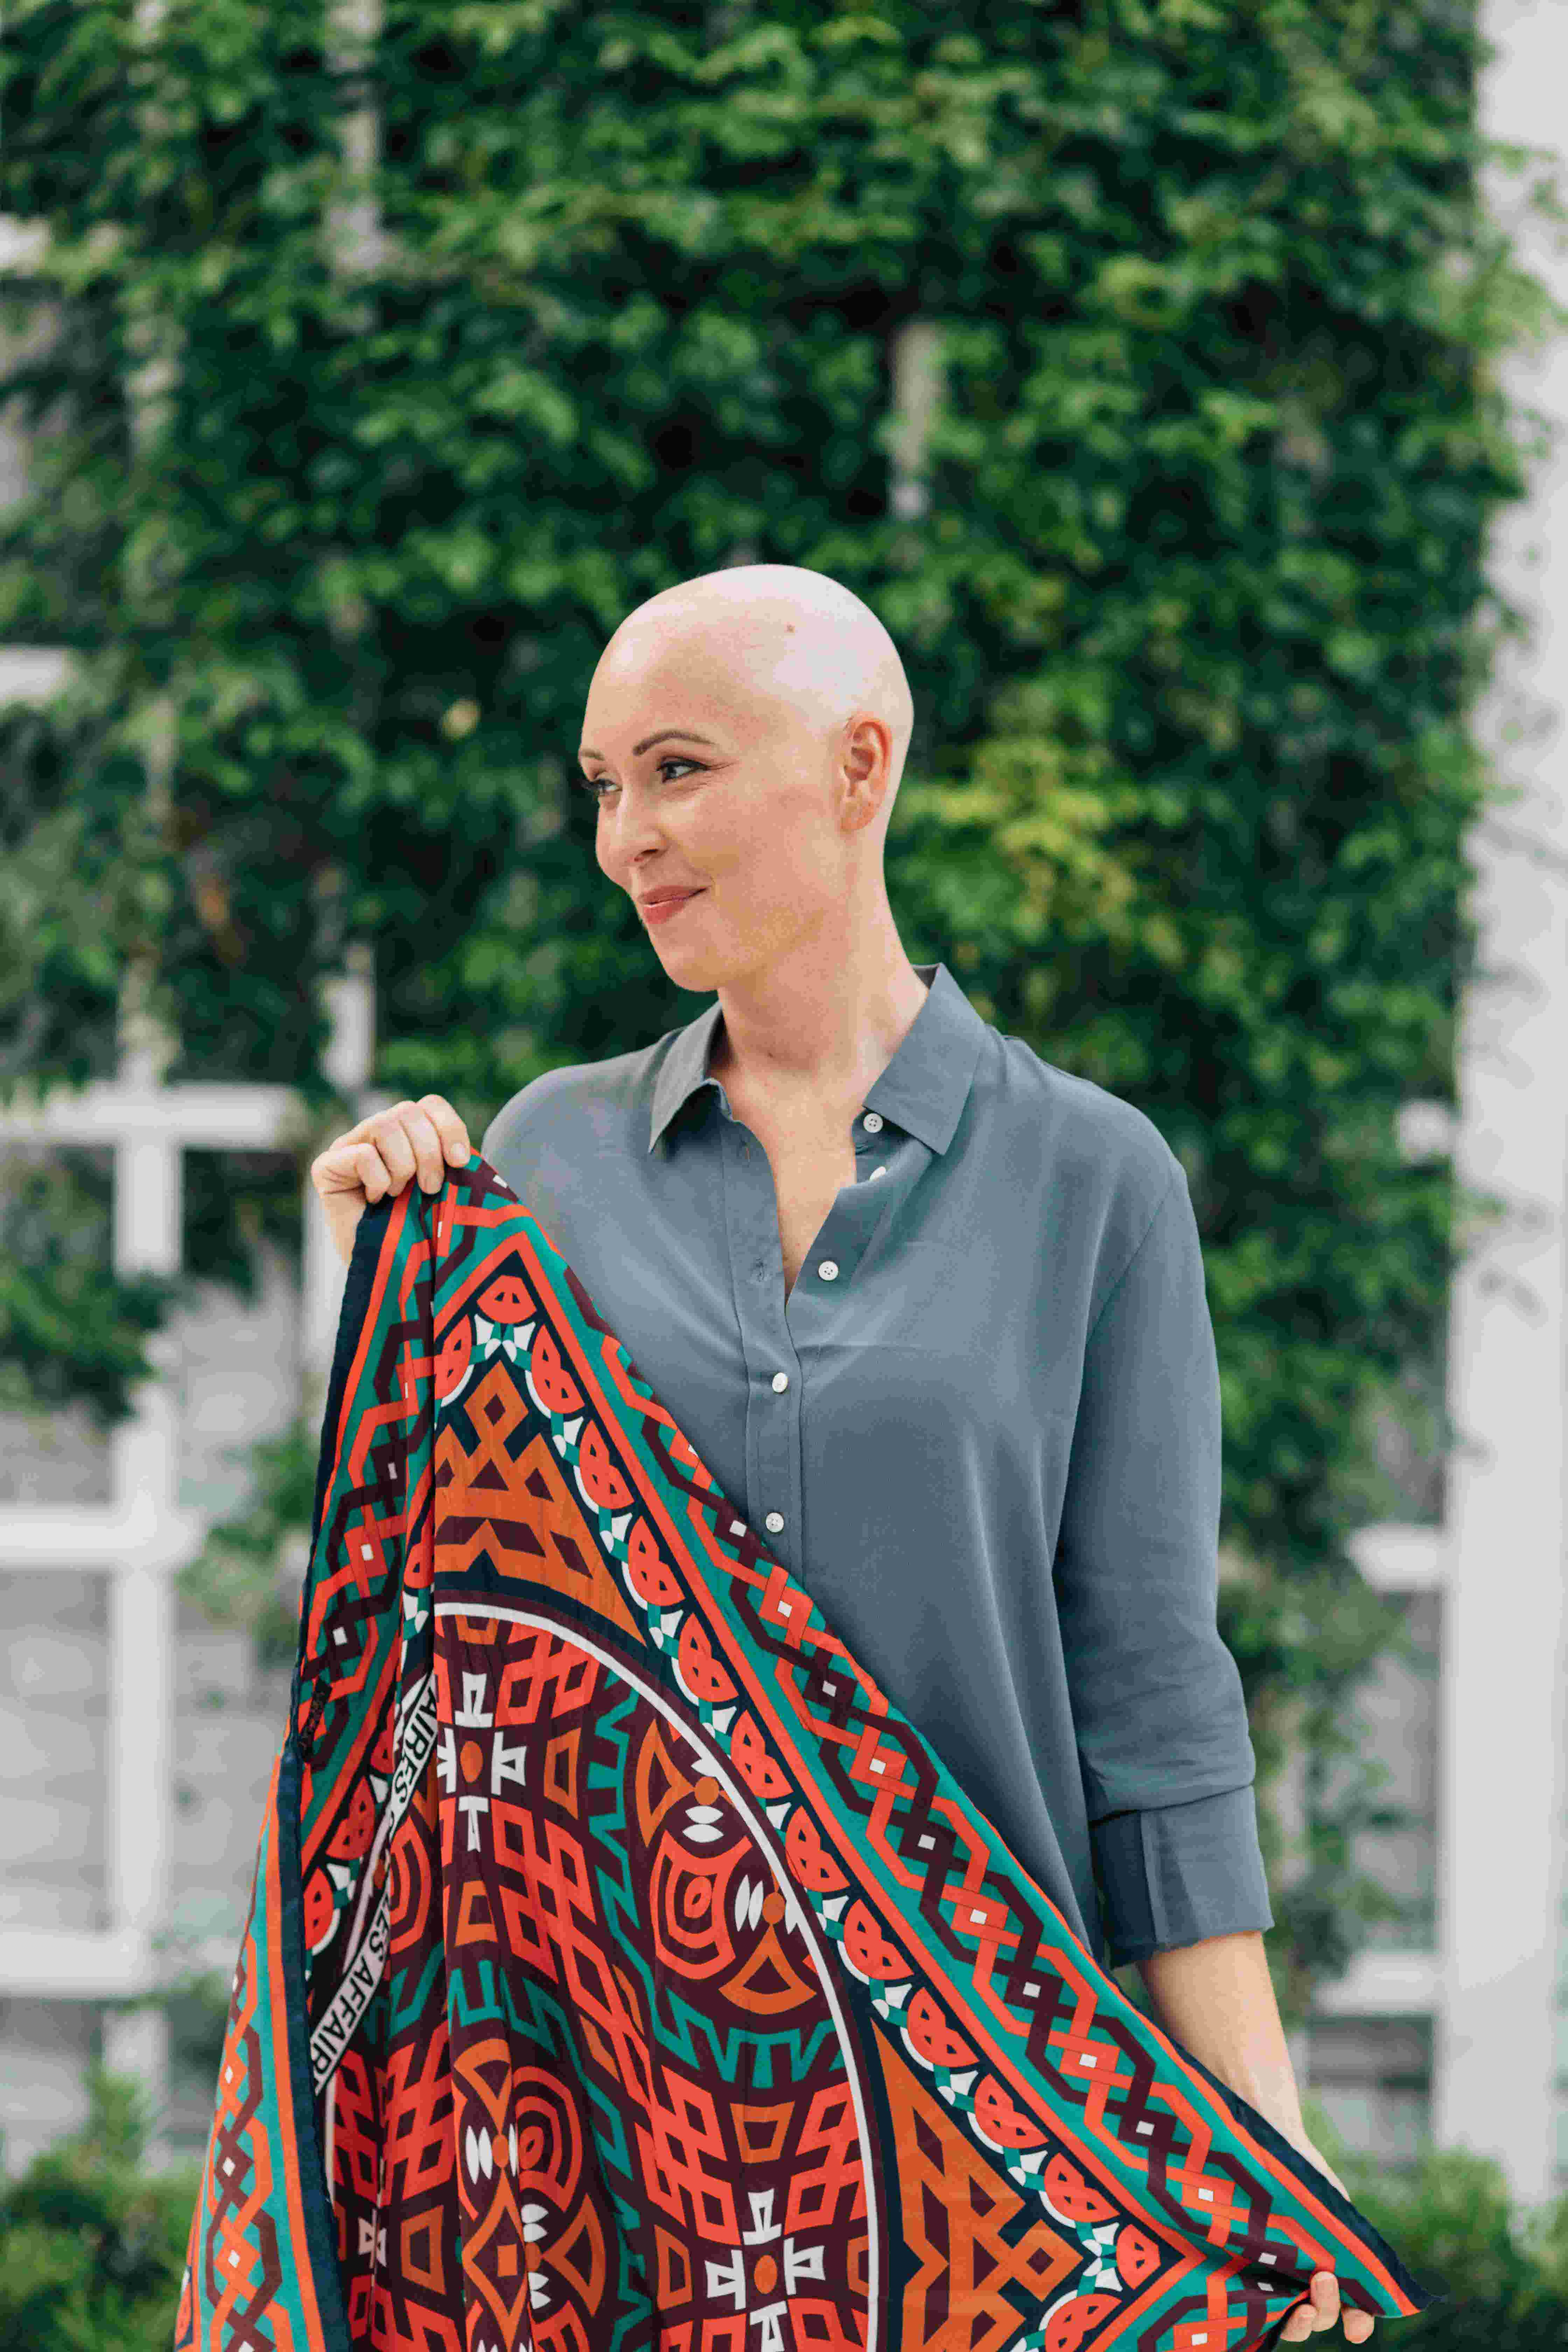 A woman with no hair smiling and holding a silk scarf in her hands